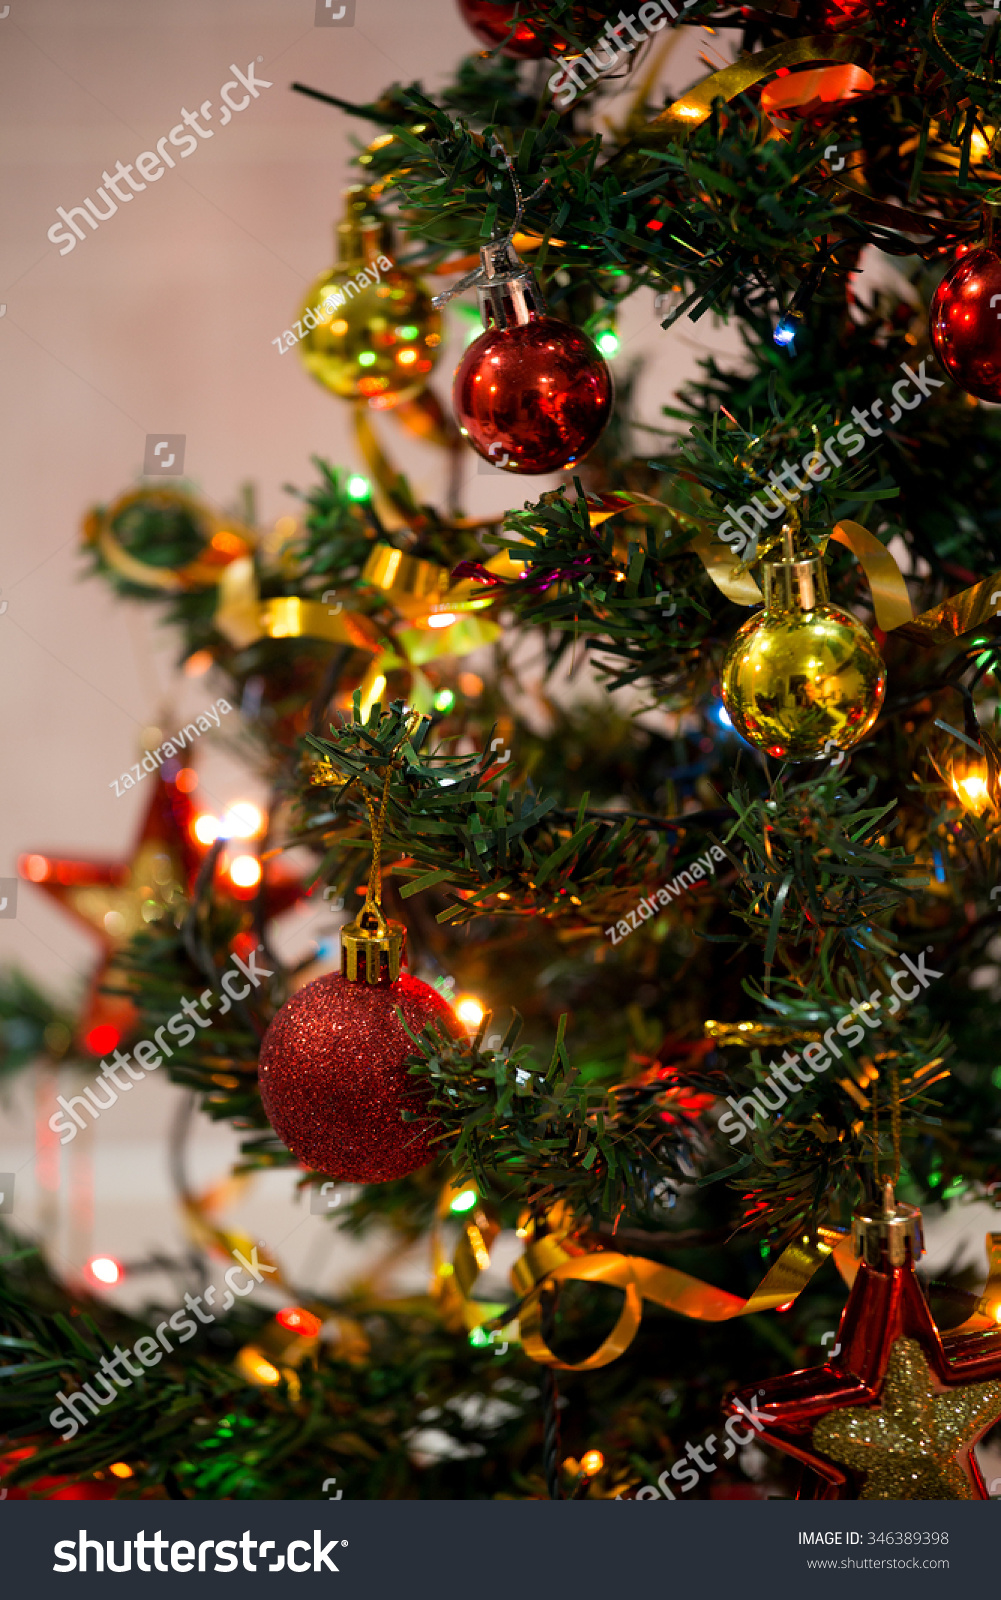 Part Of Decorated Christmas Tree Stock Photo 346389398 : Shutterstock